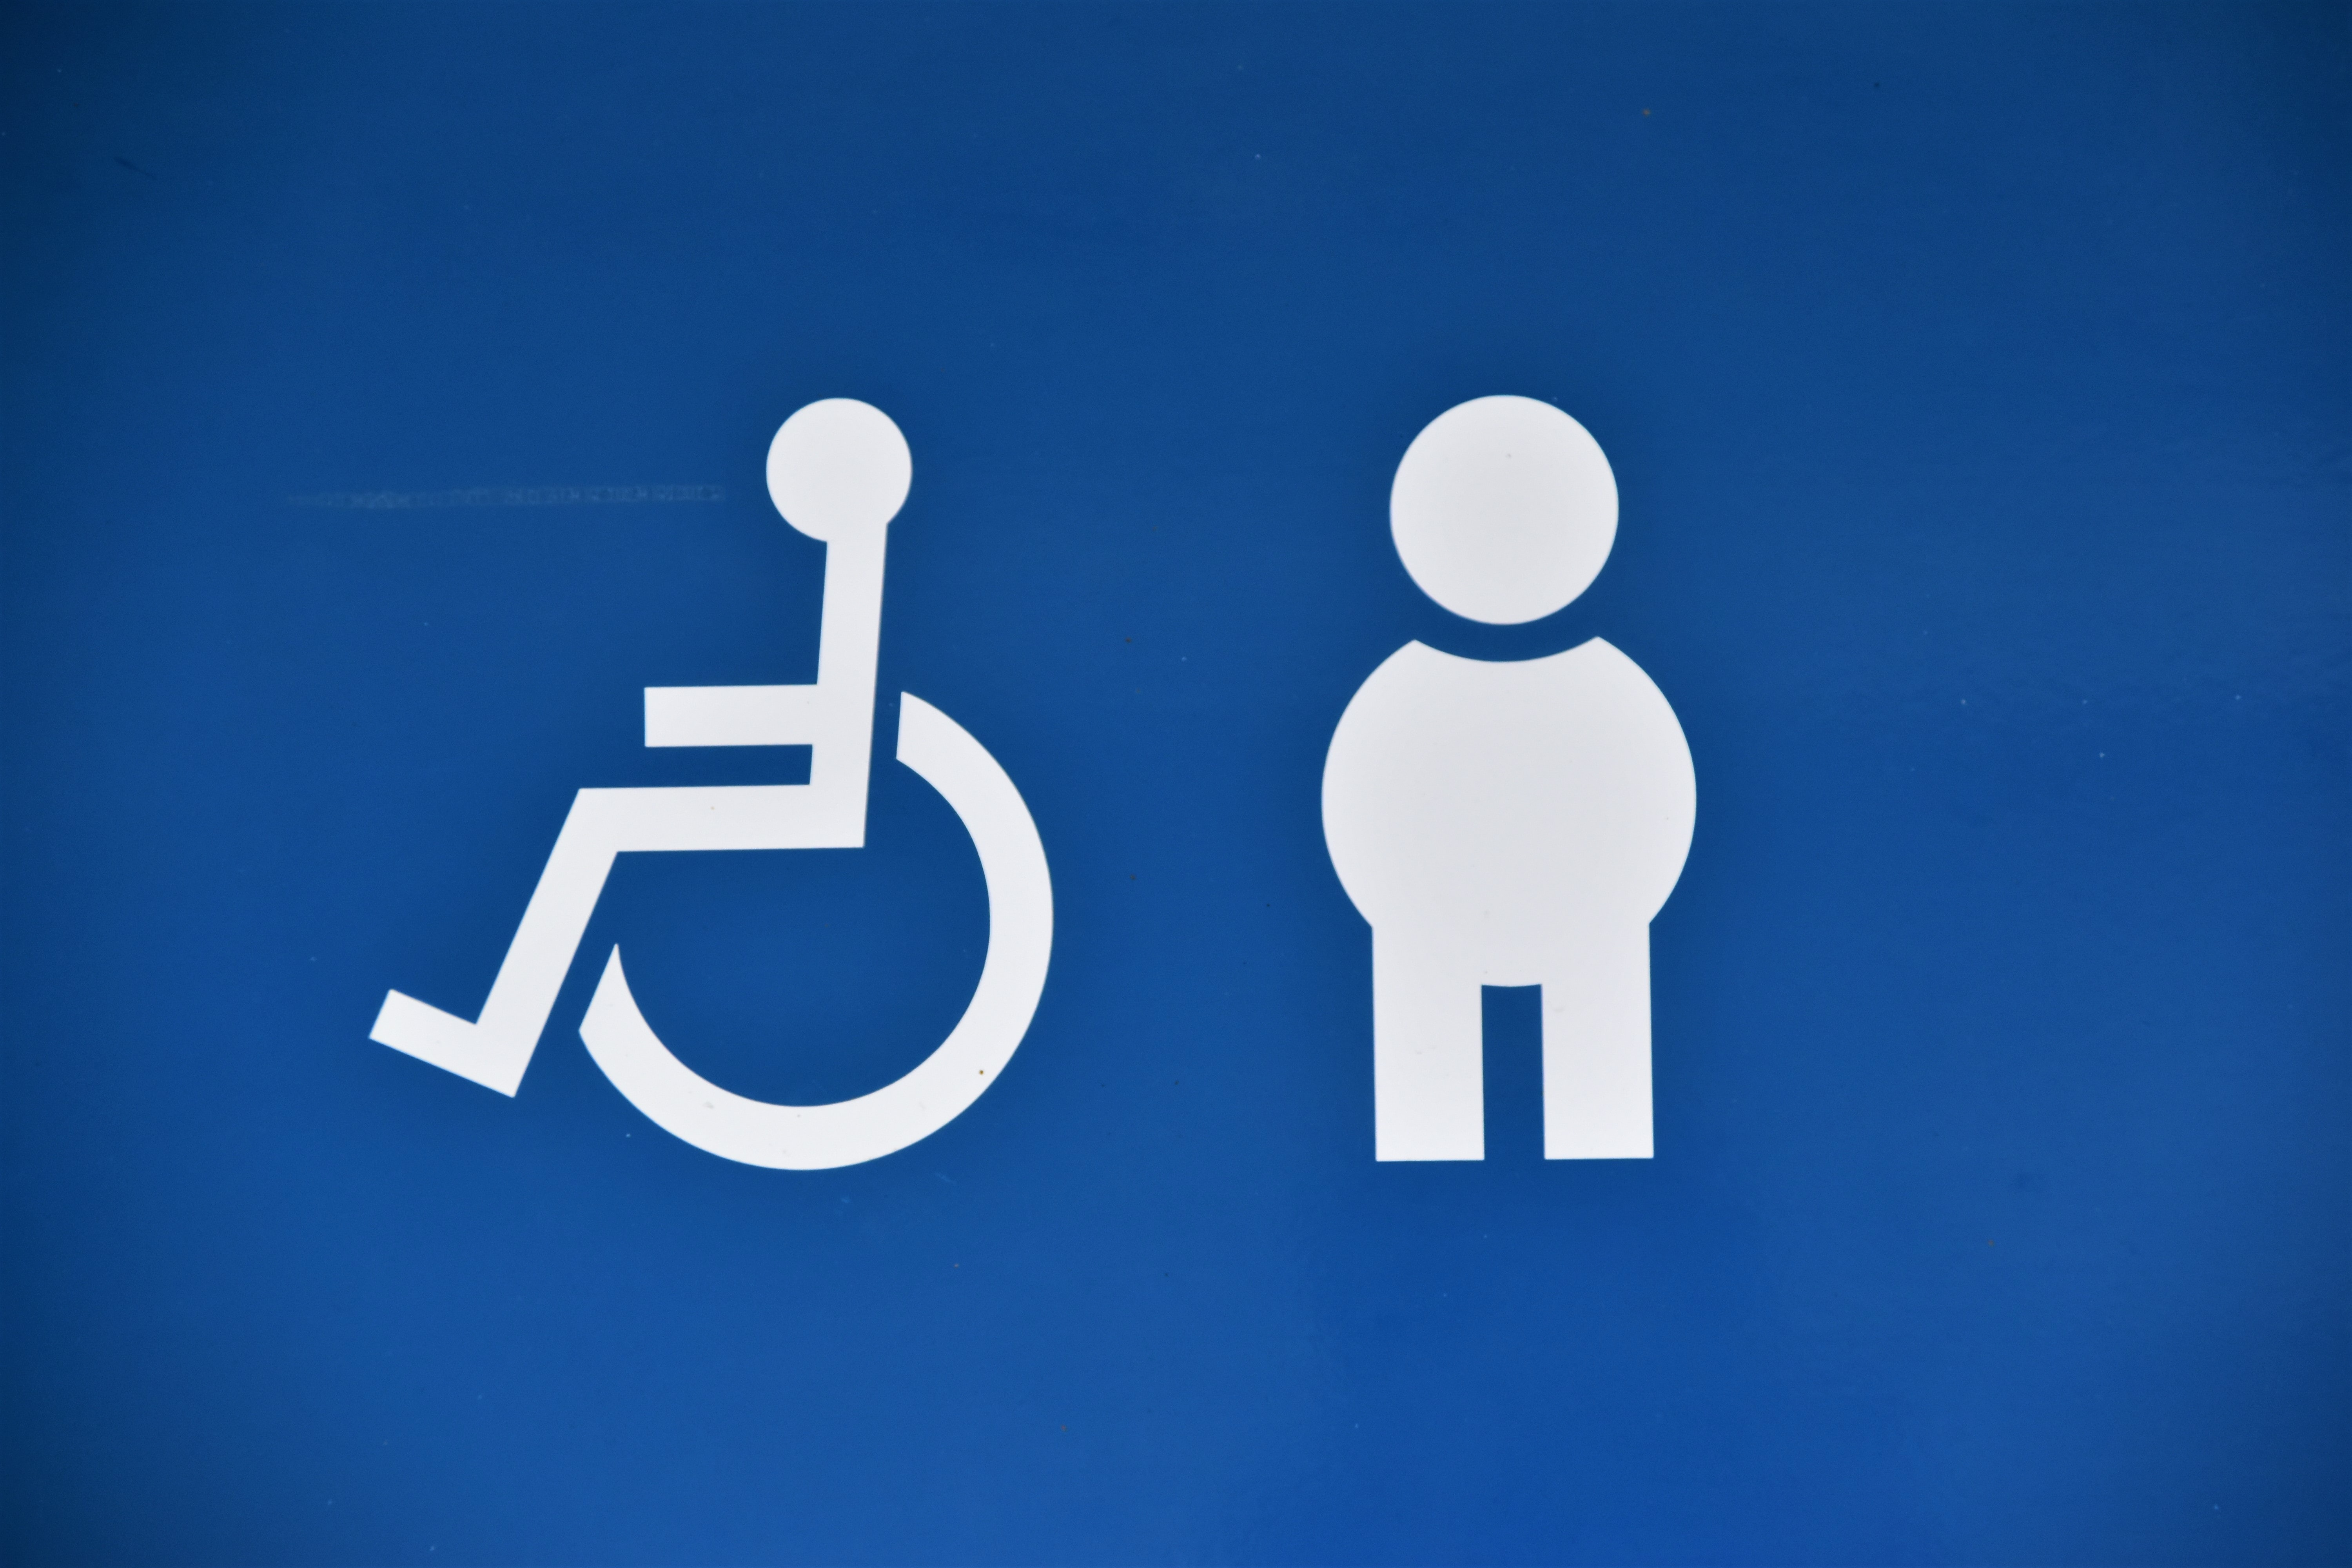 The symbol for a wheelchair user and a stick figure drawn in white sit on a blue background. The illustration represents visible and invisible disabilities.